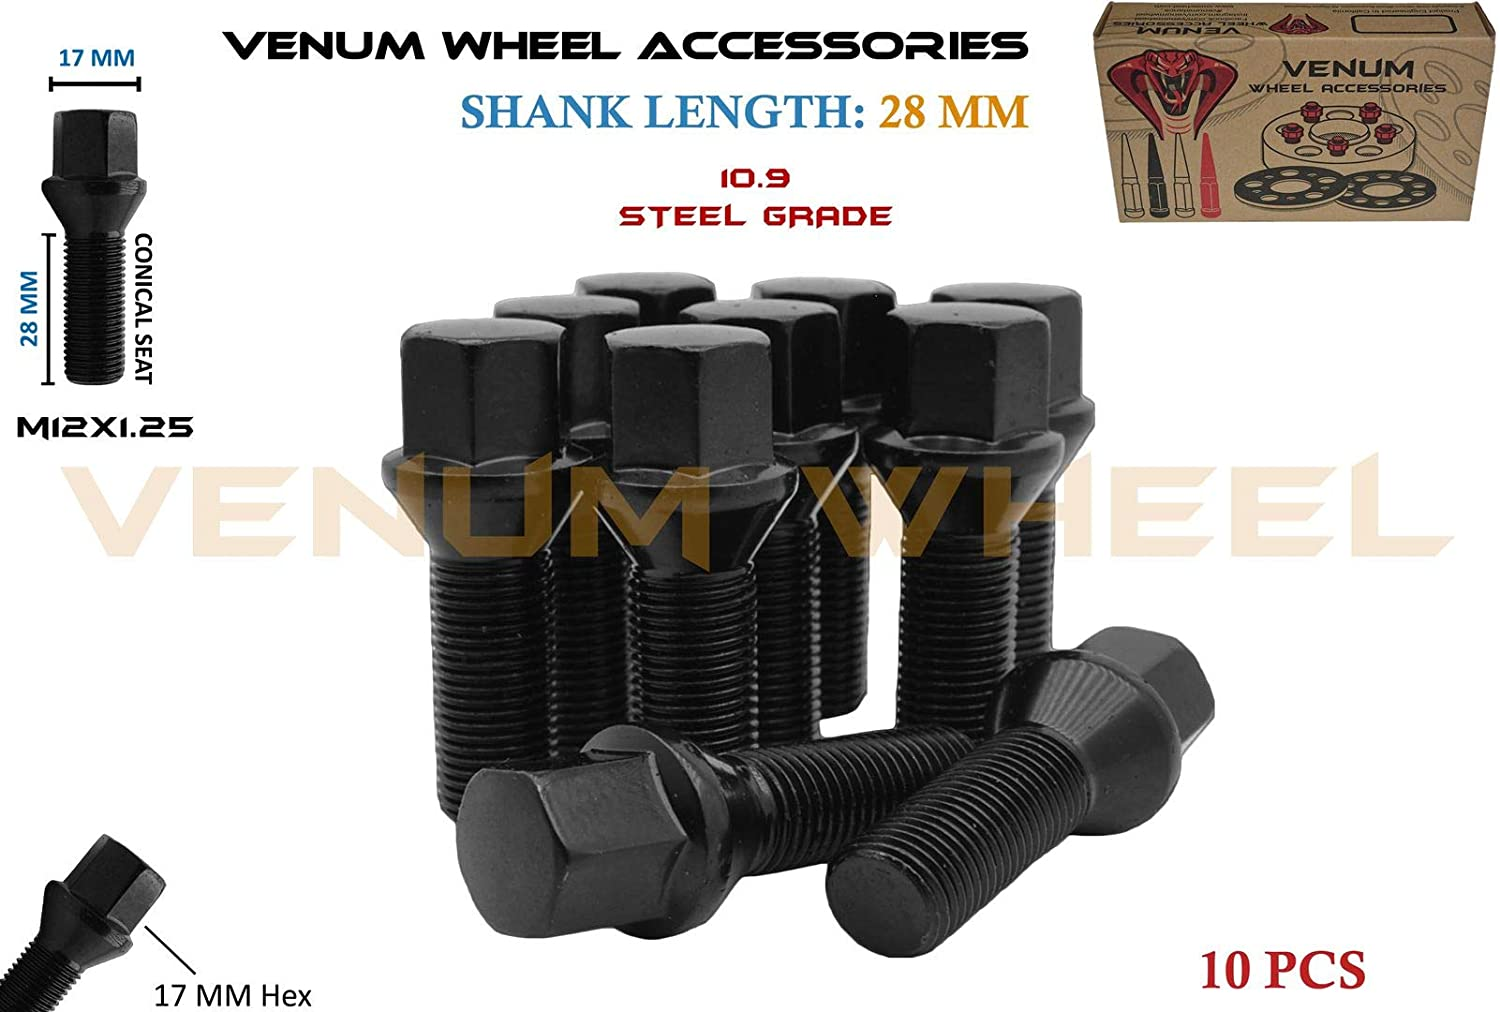 Venum wheel accessories 10Pc Black Powder Coated M12x1.25 Conical Seat Lug Bolts 28 MM Factory Shank Length Works with Jeep Fiat Dodge Chrysler Alfa Romeo Factory & Aftermarket Wheels